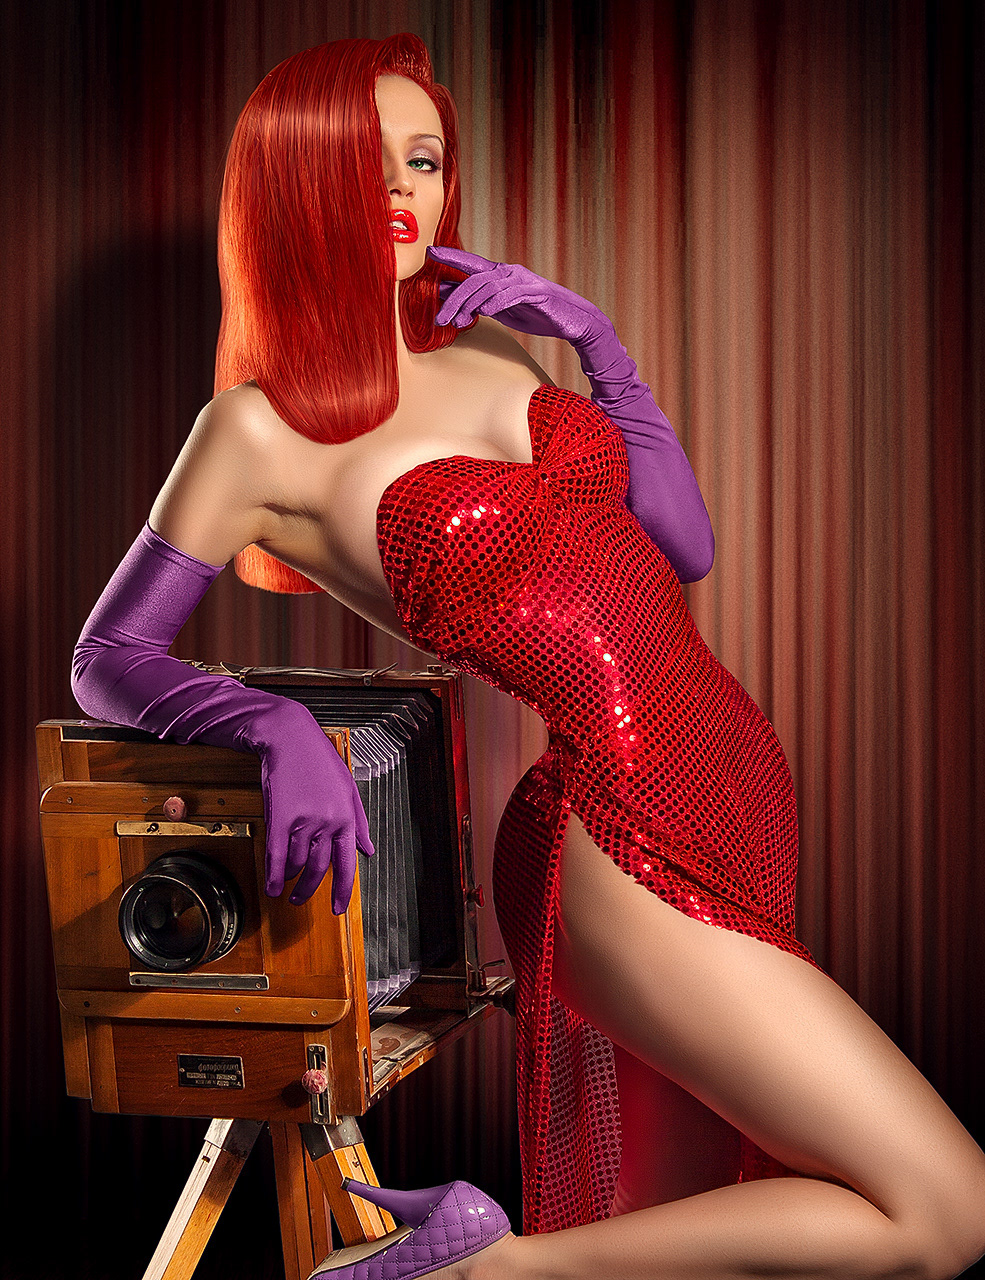 Jessica Rabbit (Before/After) 3 photos